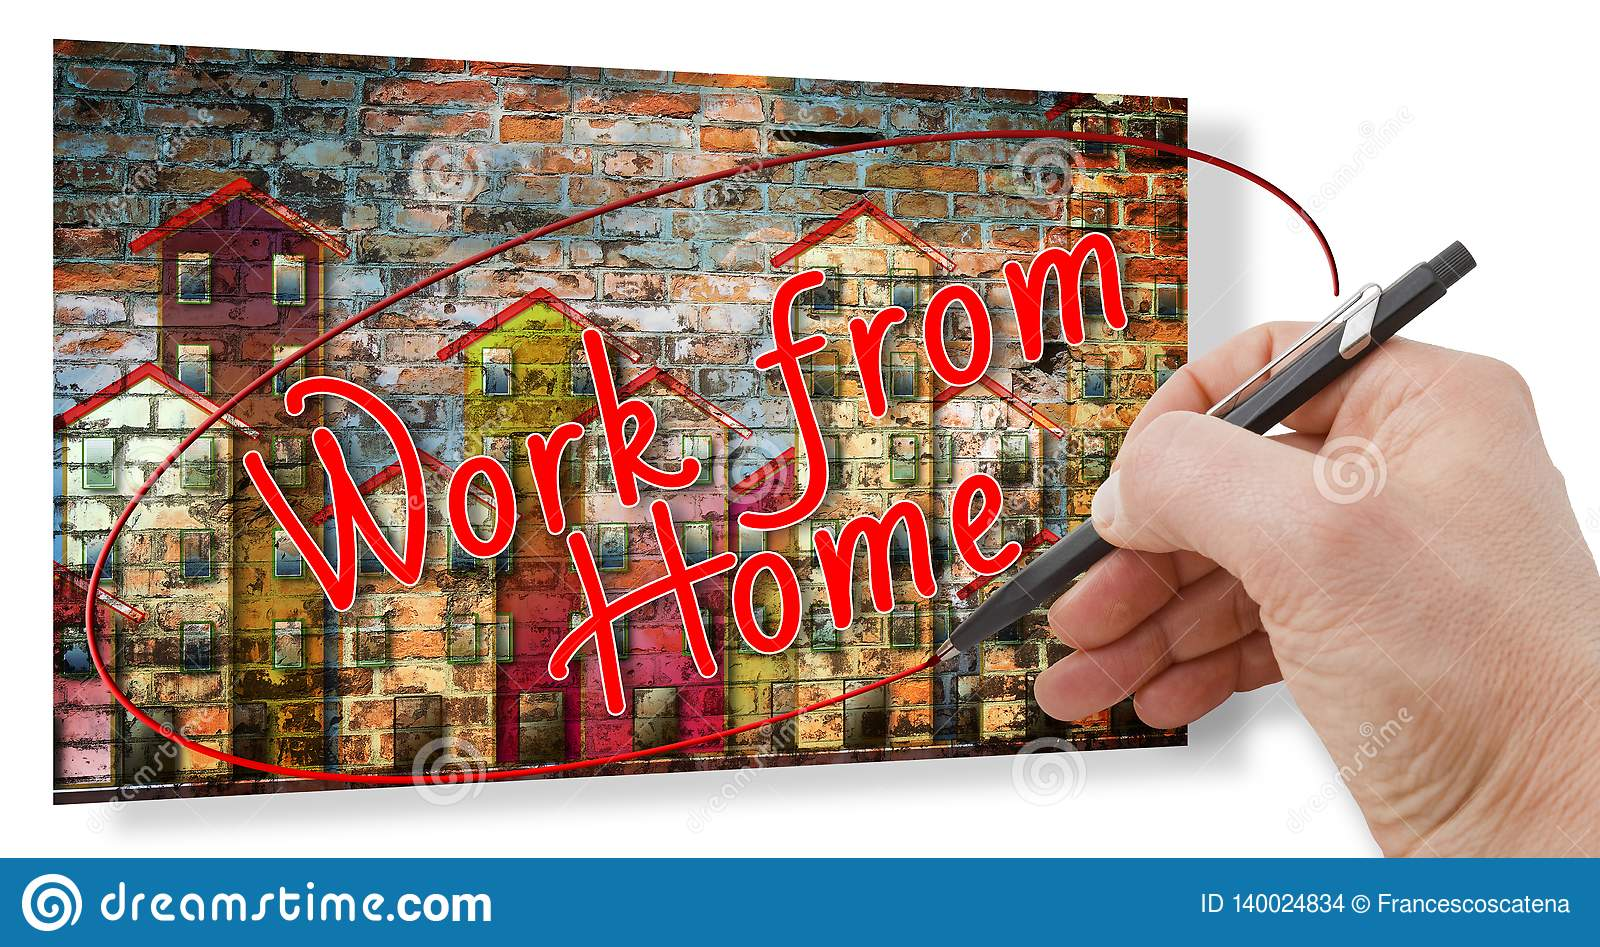 Hand writing `Work from home` - With new technology you can work at home - Concept image